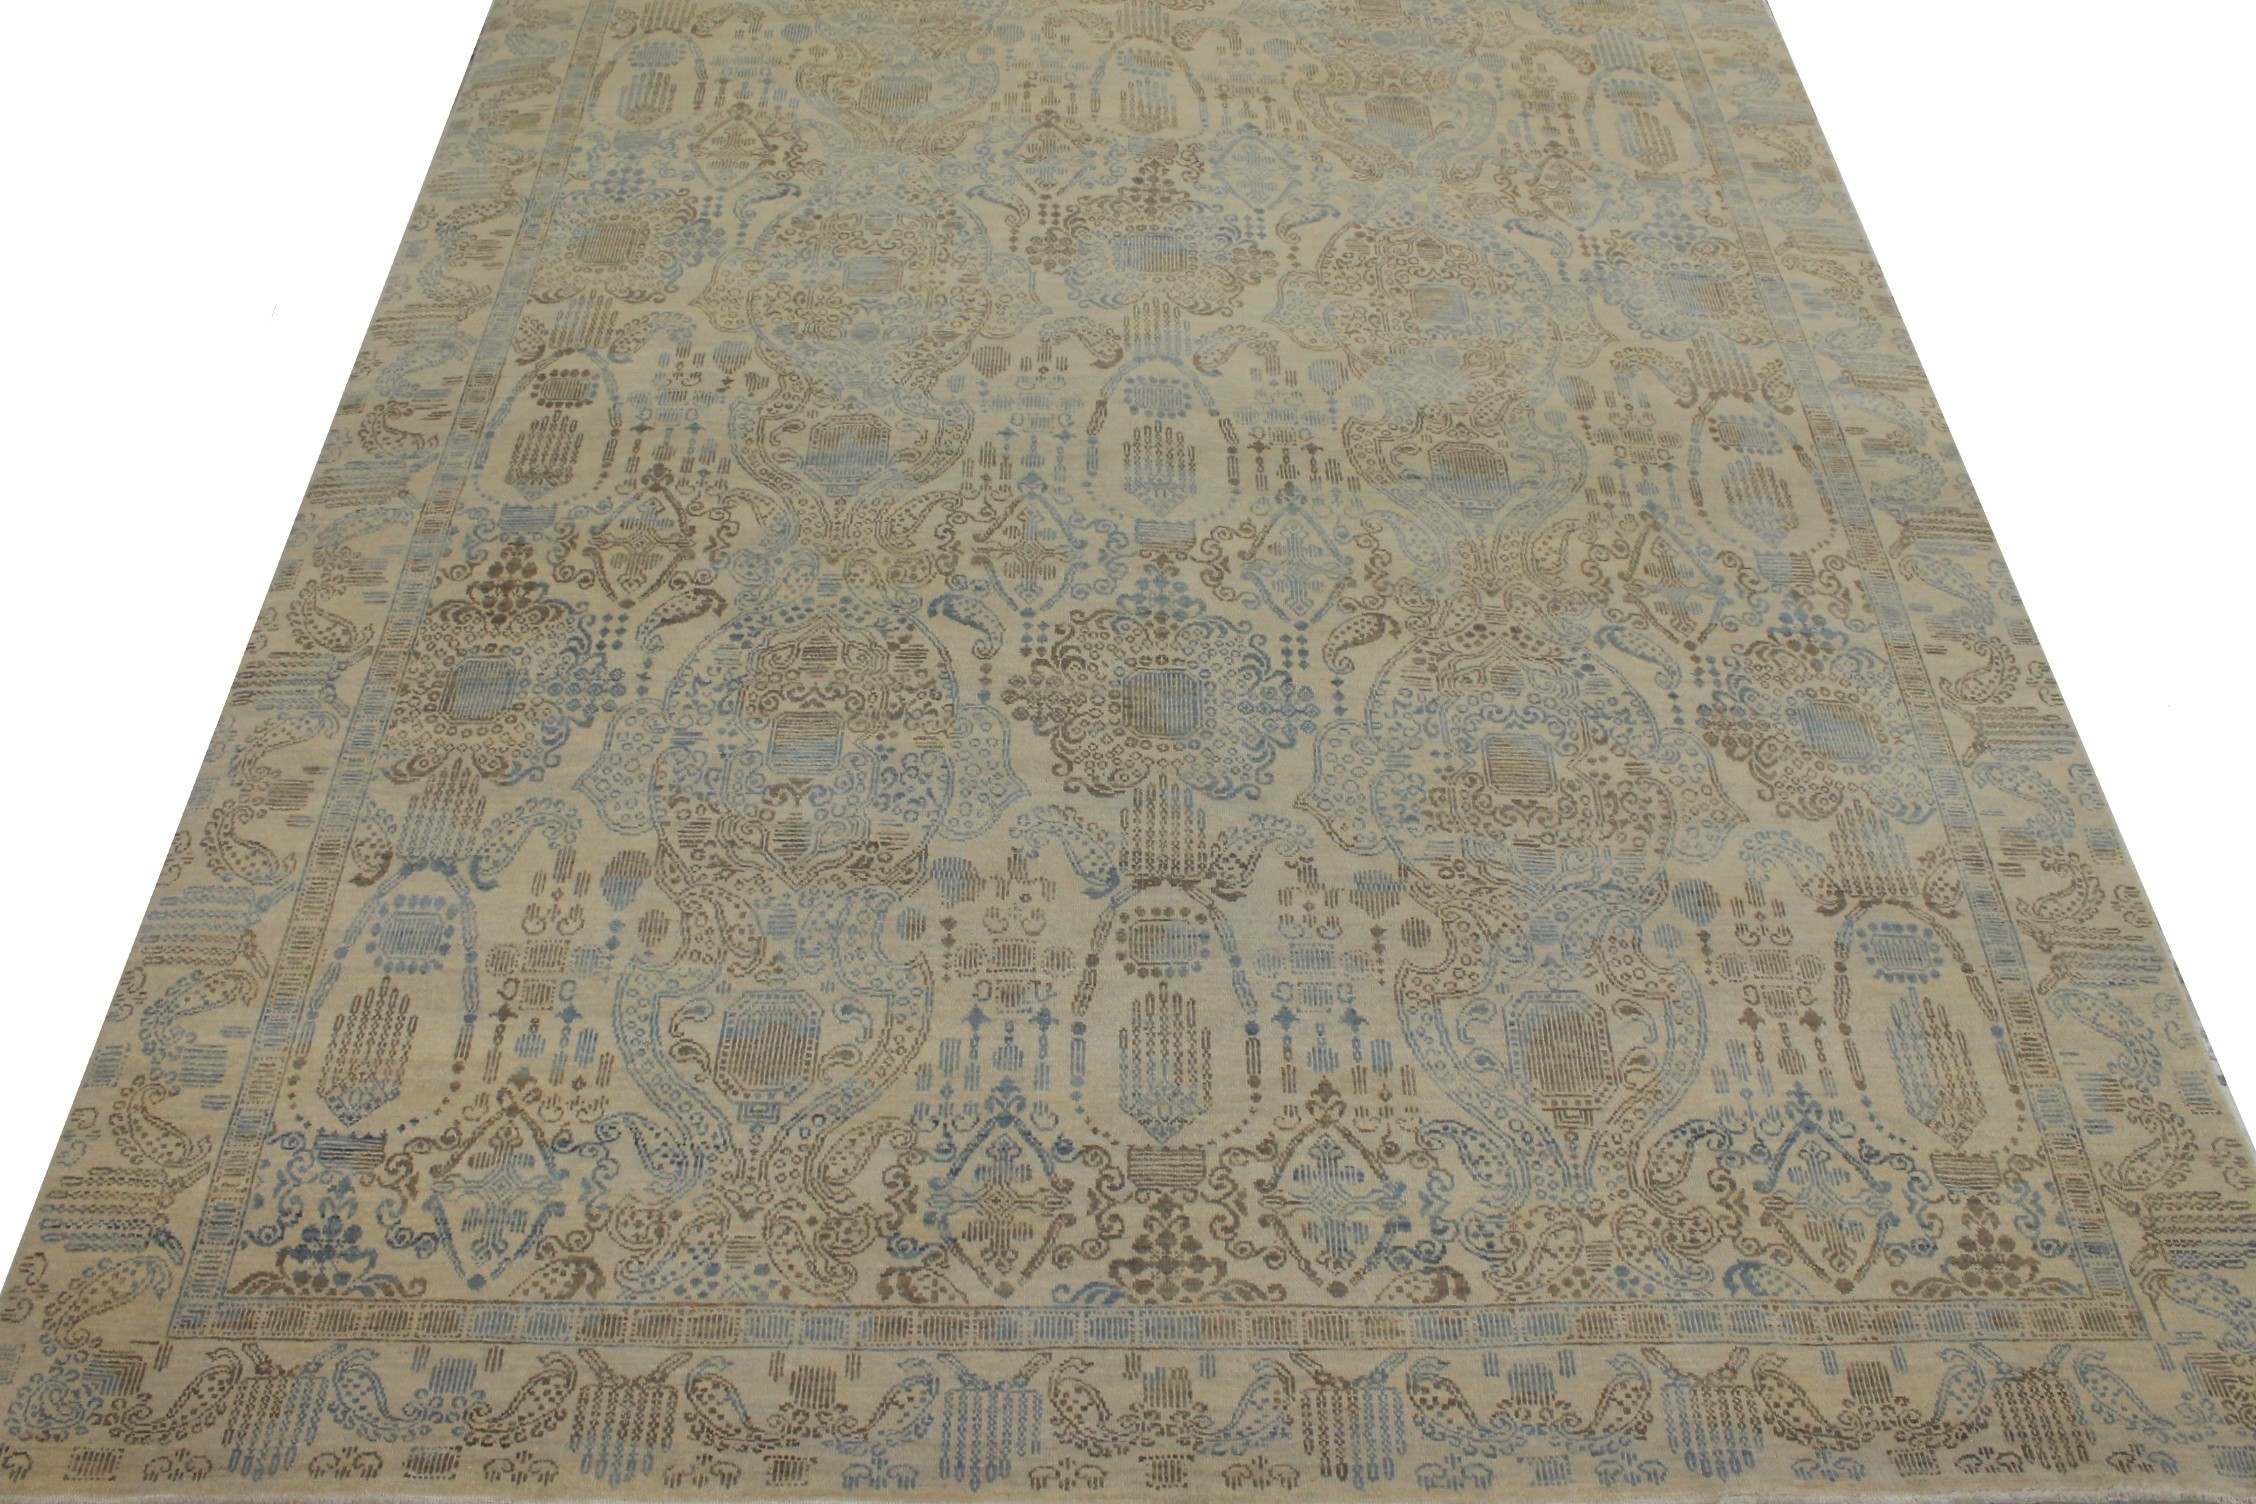 8x10 Contemporary Hand Knotted Wool Area Rug - MR14548